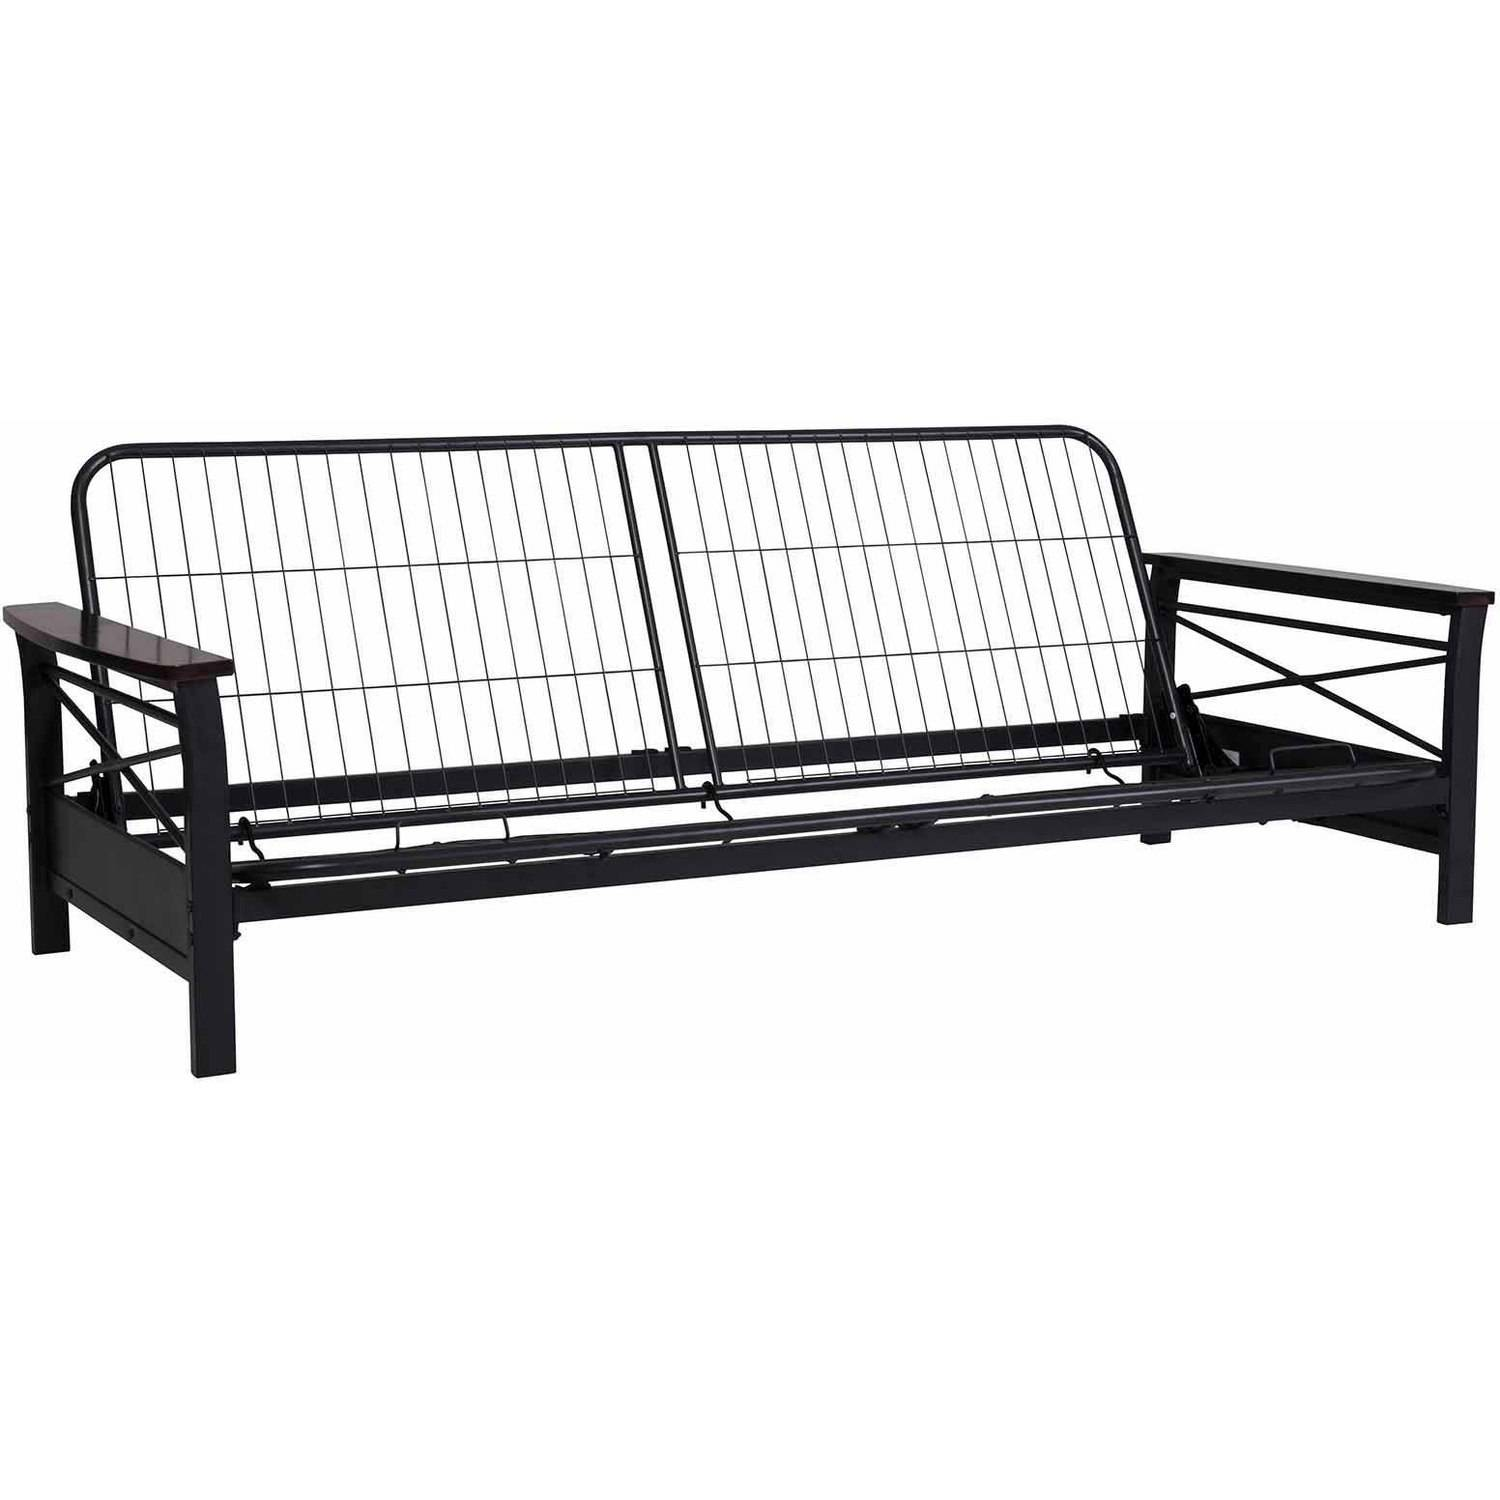 today futons home product walnut storage drawers frame rustic tacoma free black shipping overstock garden metal futon with somette